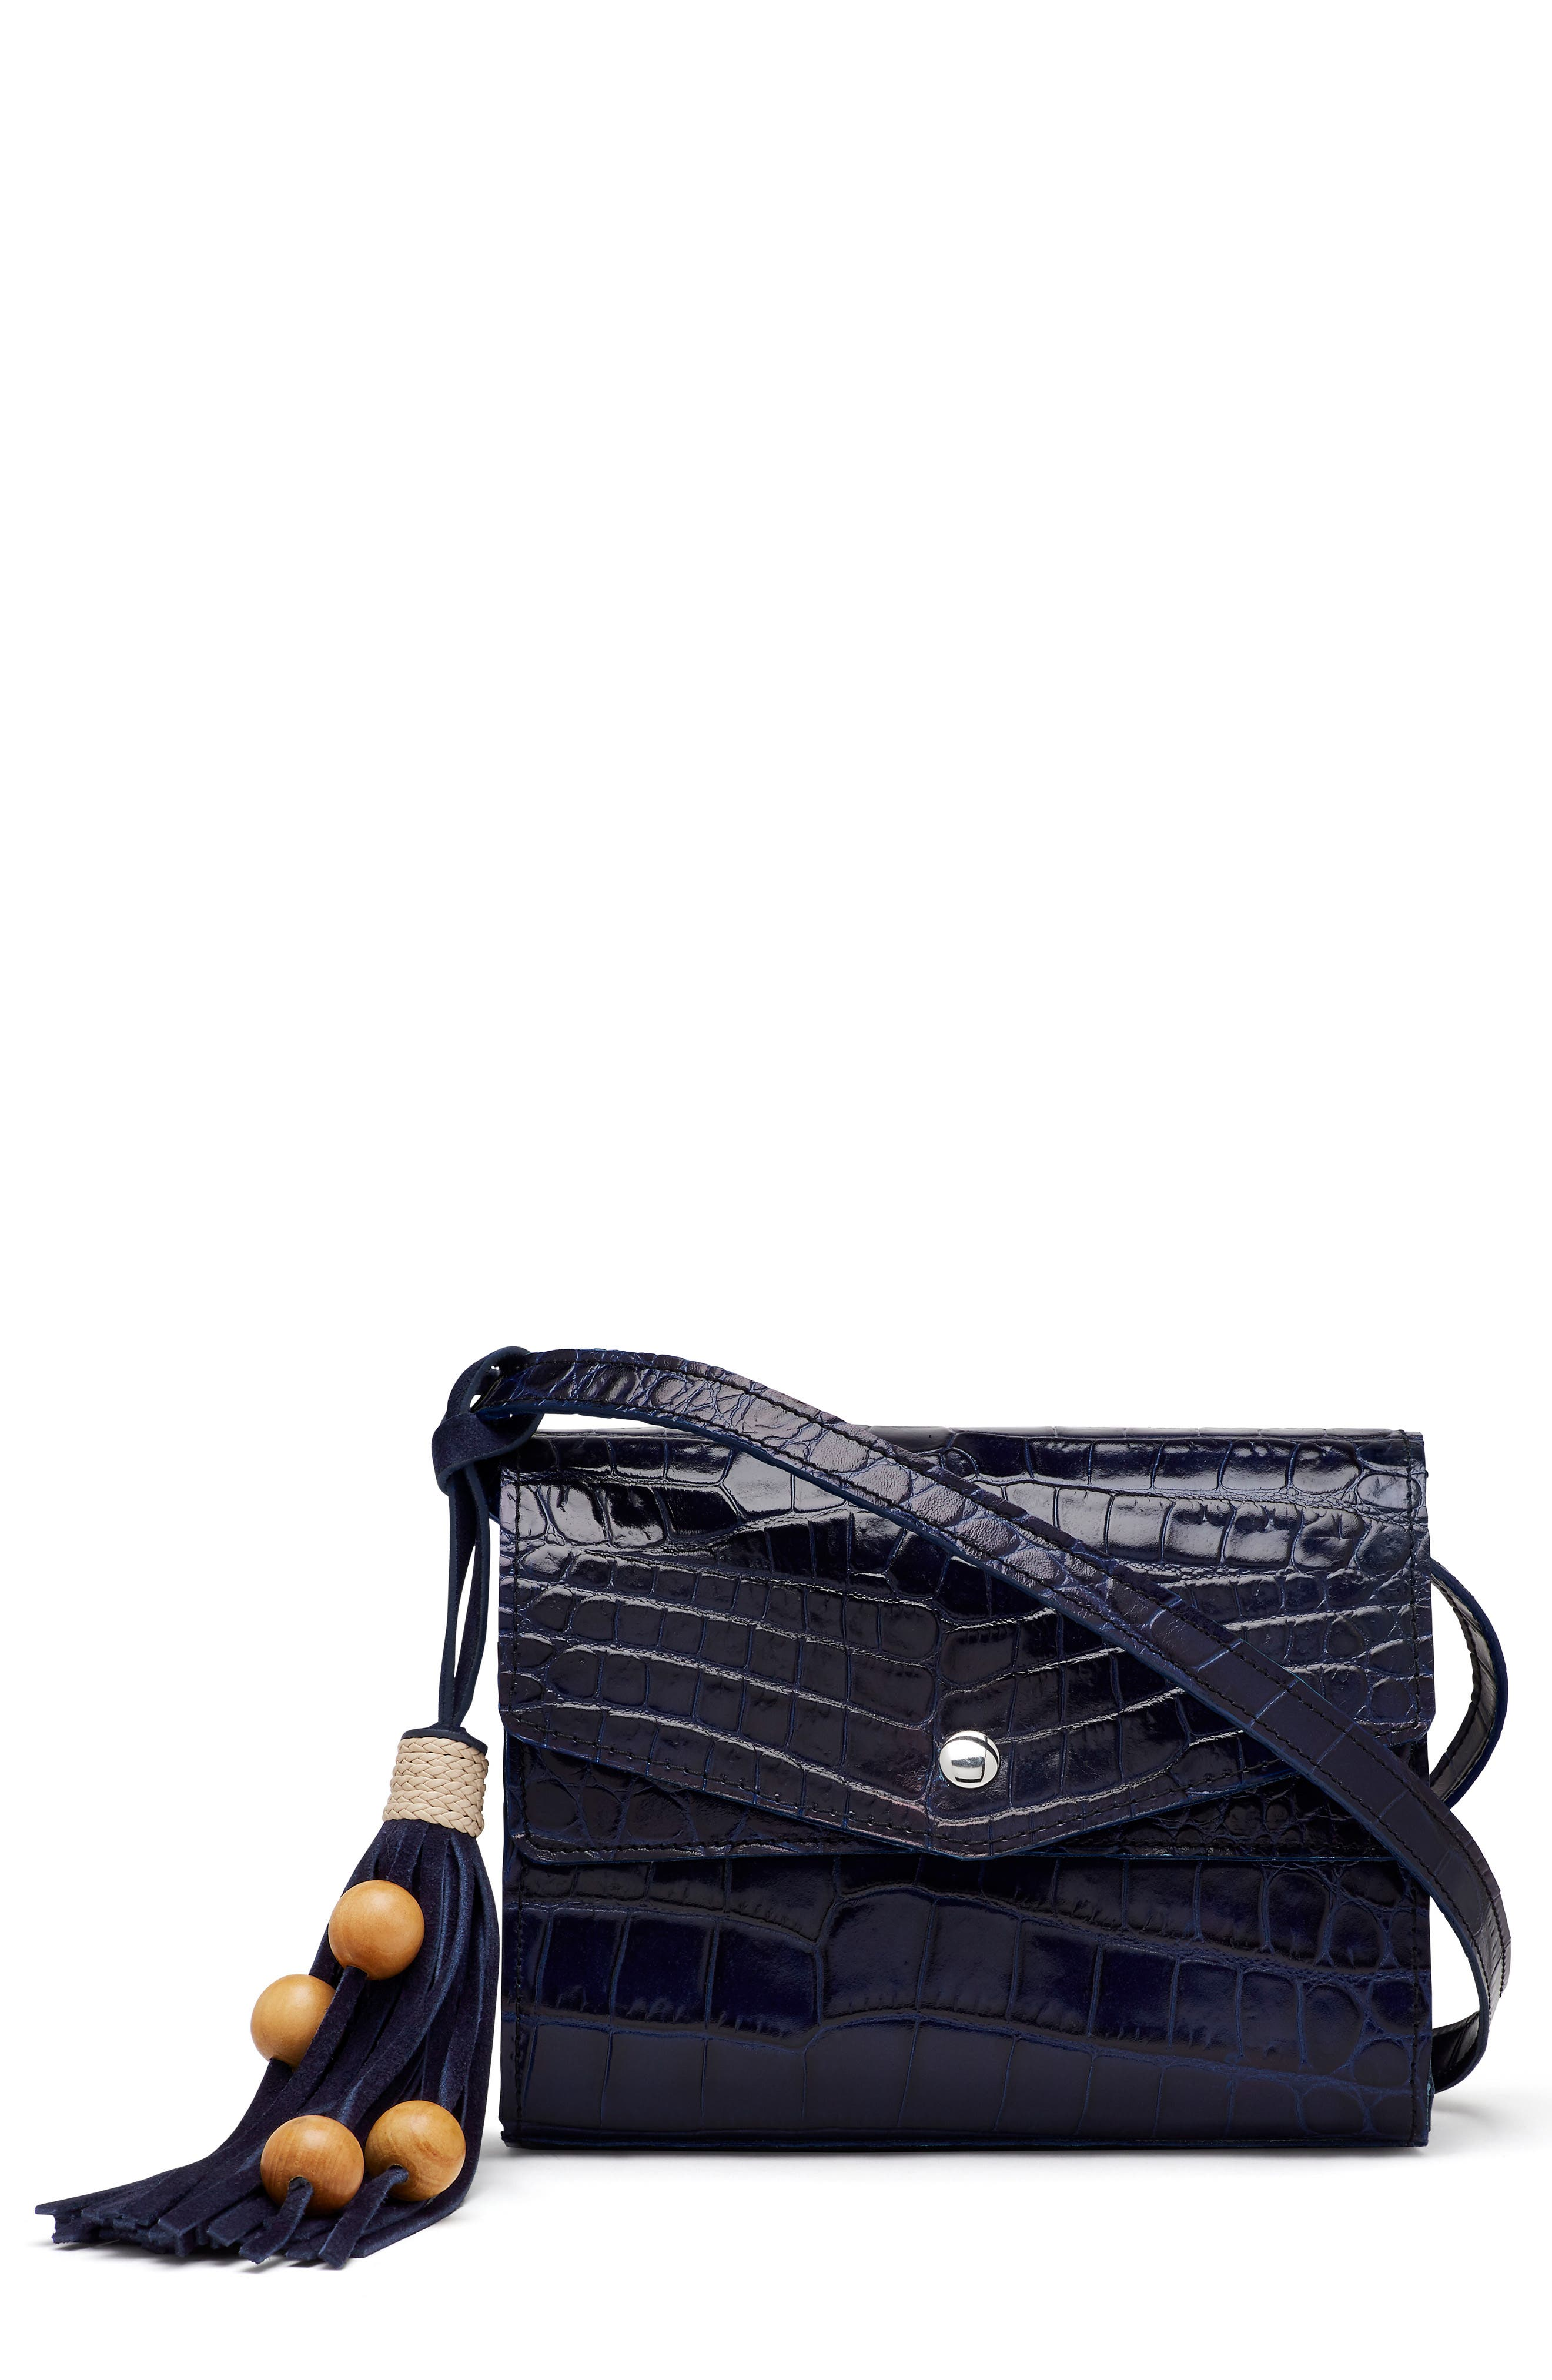 Main Image - Elizabeth and James Eloise Field Leather Crossbody Bag